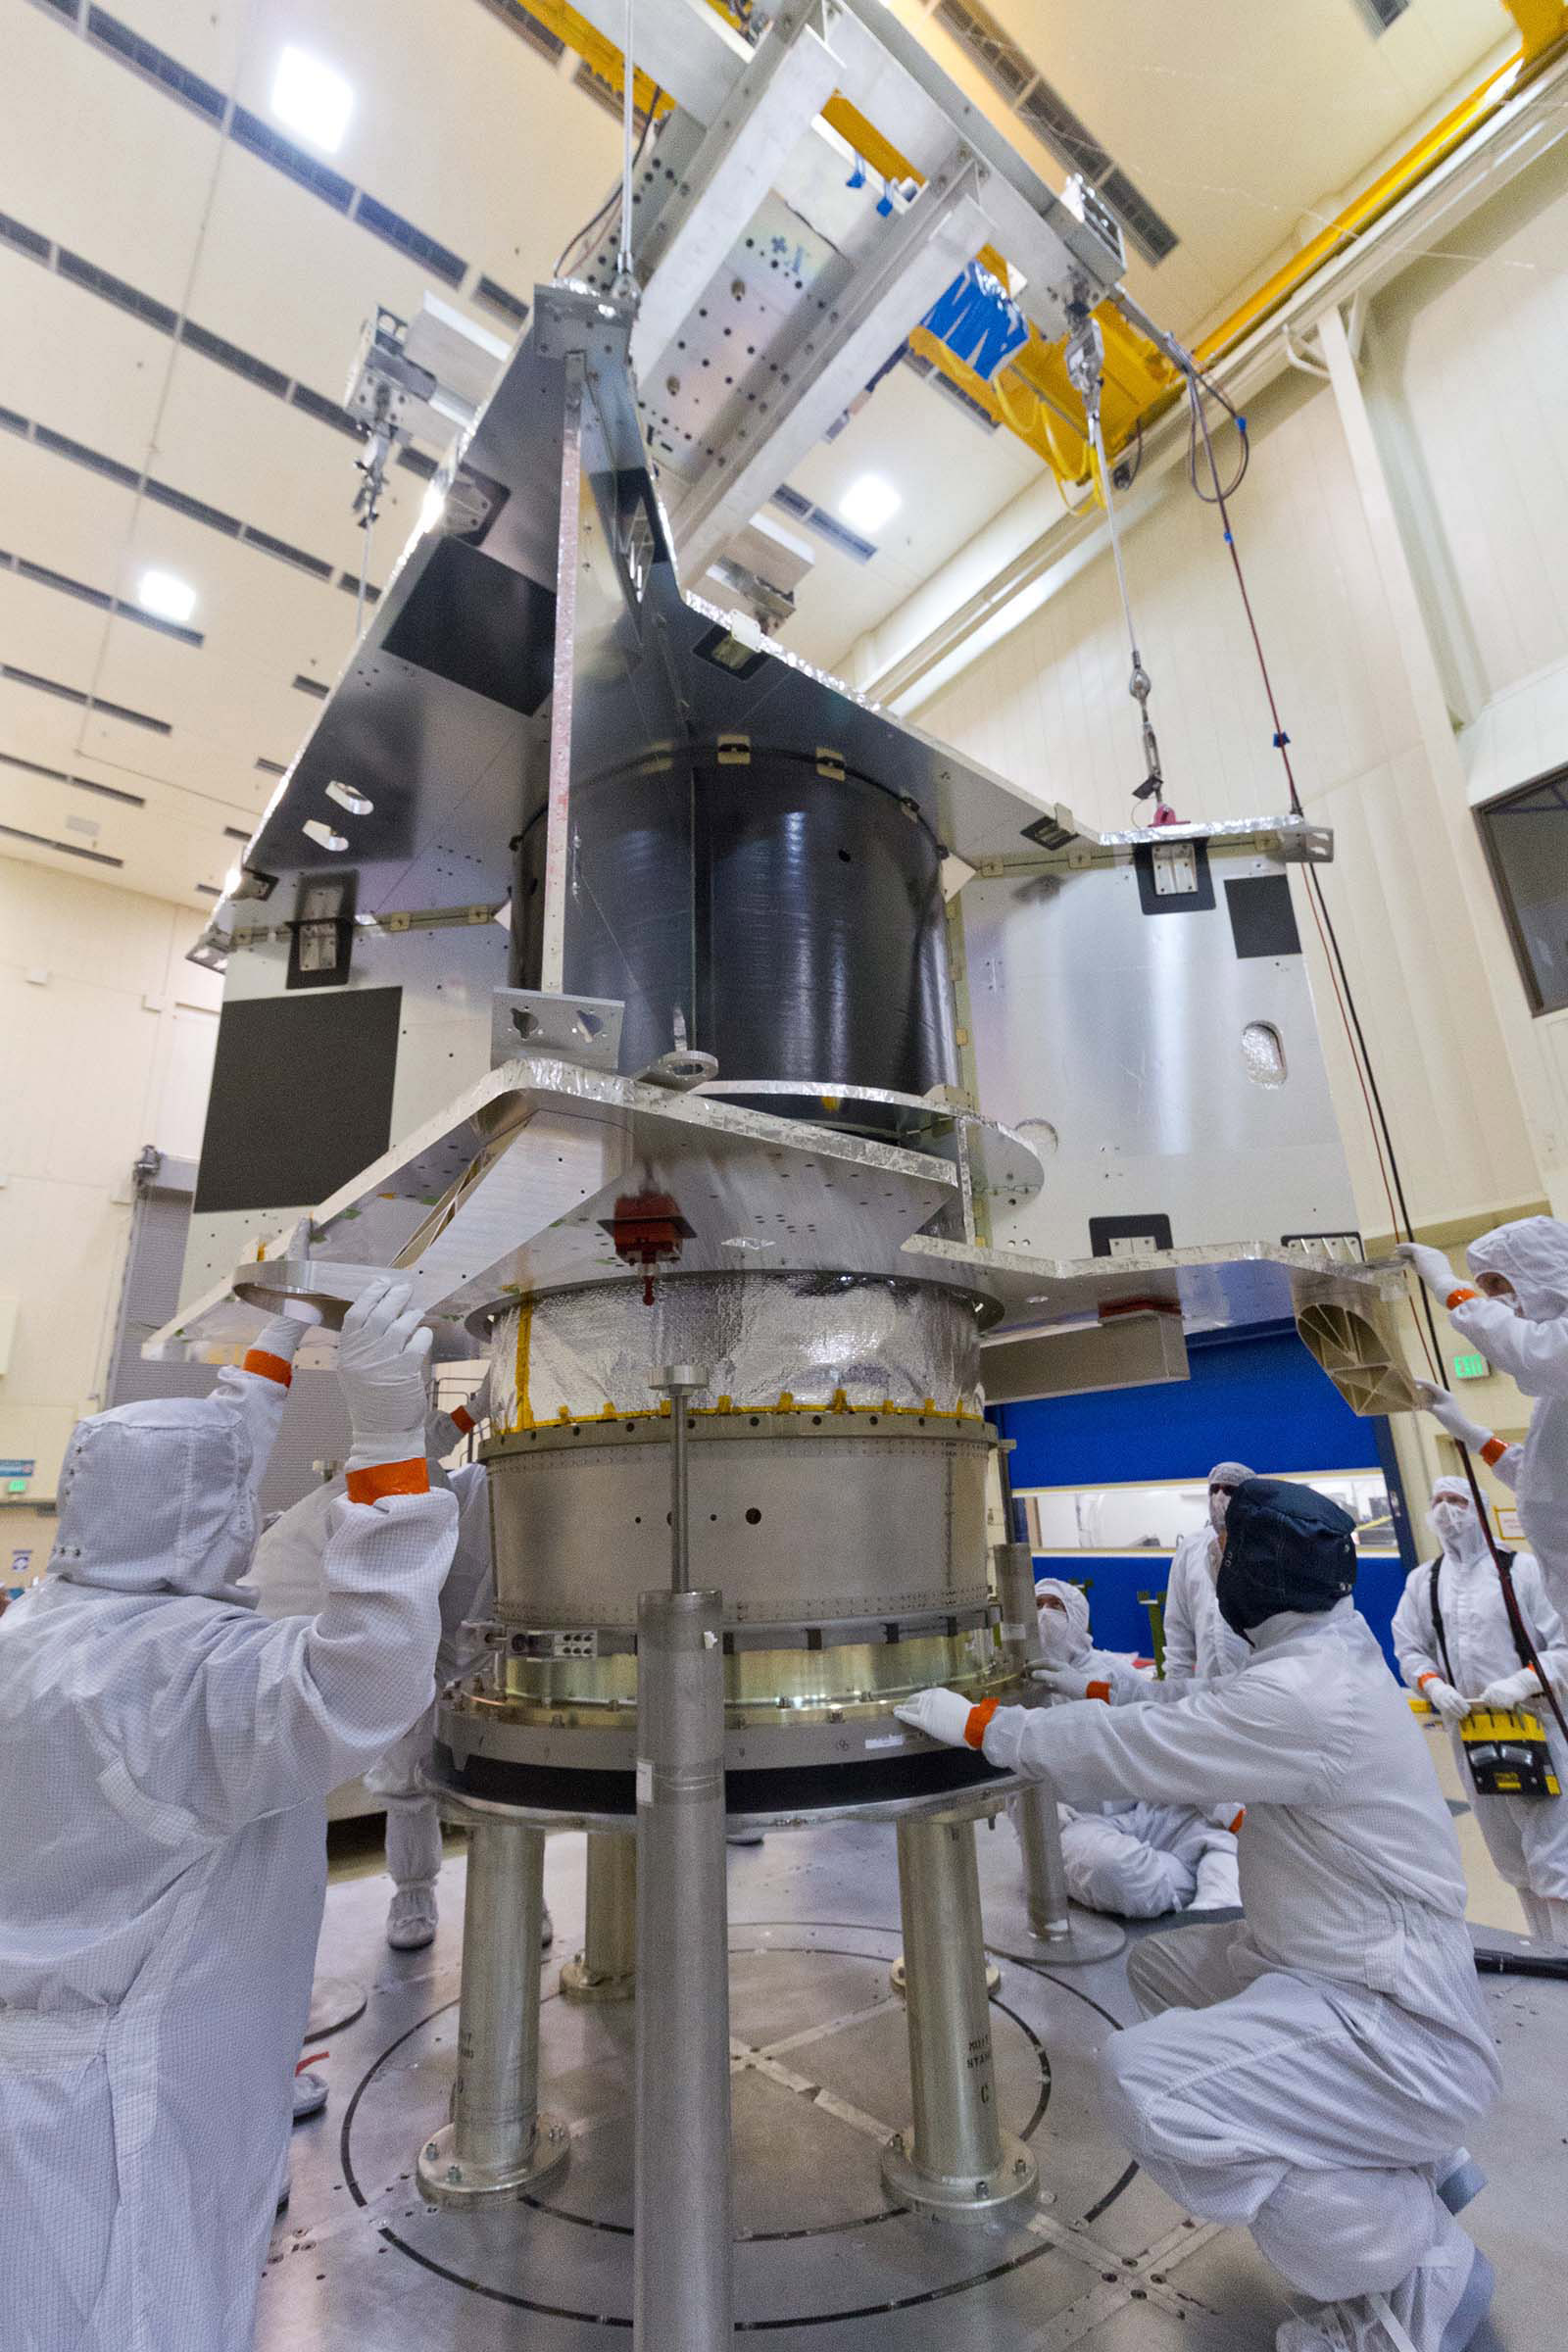 he OSIRIS-REx spacecraft core structure is successfully lowered and mated to the hydrazine propellant tank and boat tail assembly at Lockheed Martin, Denver, Colo.